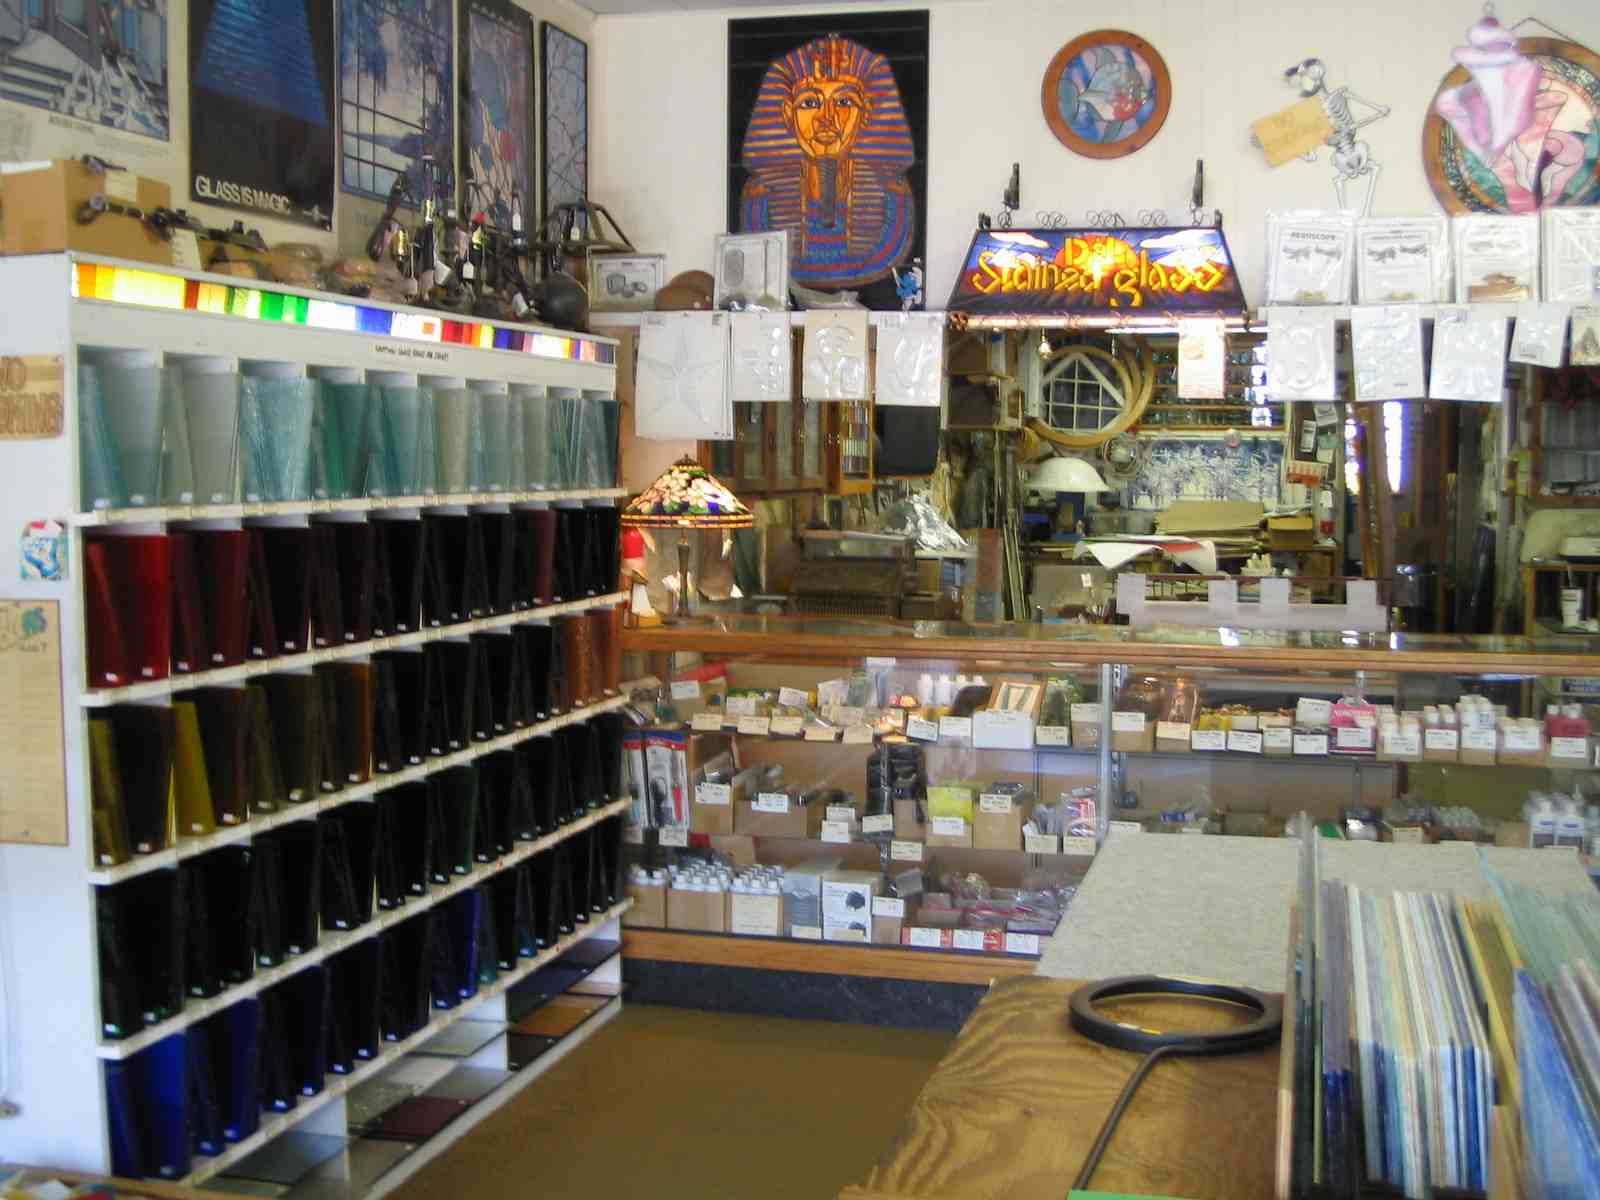 picture inside the stained glass store